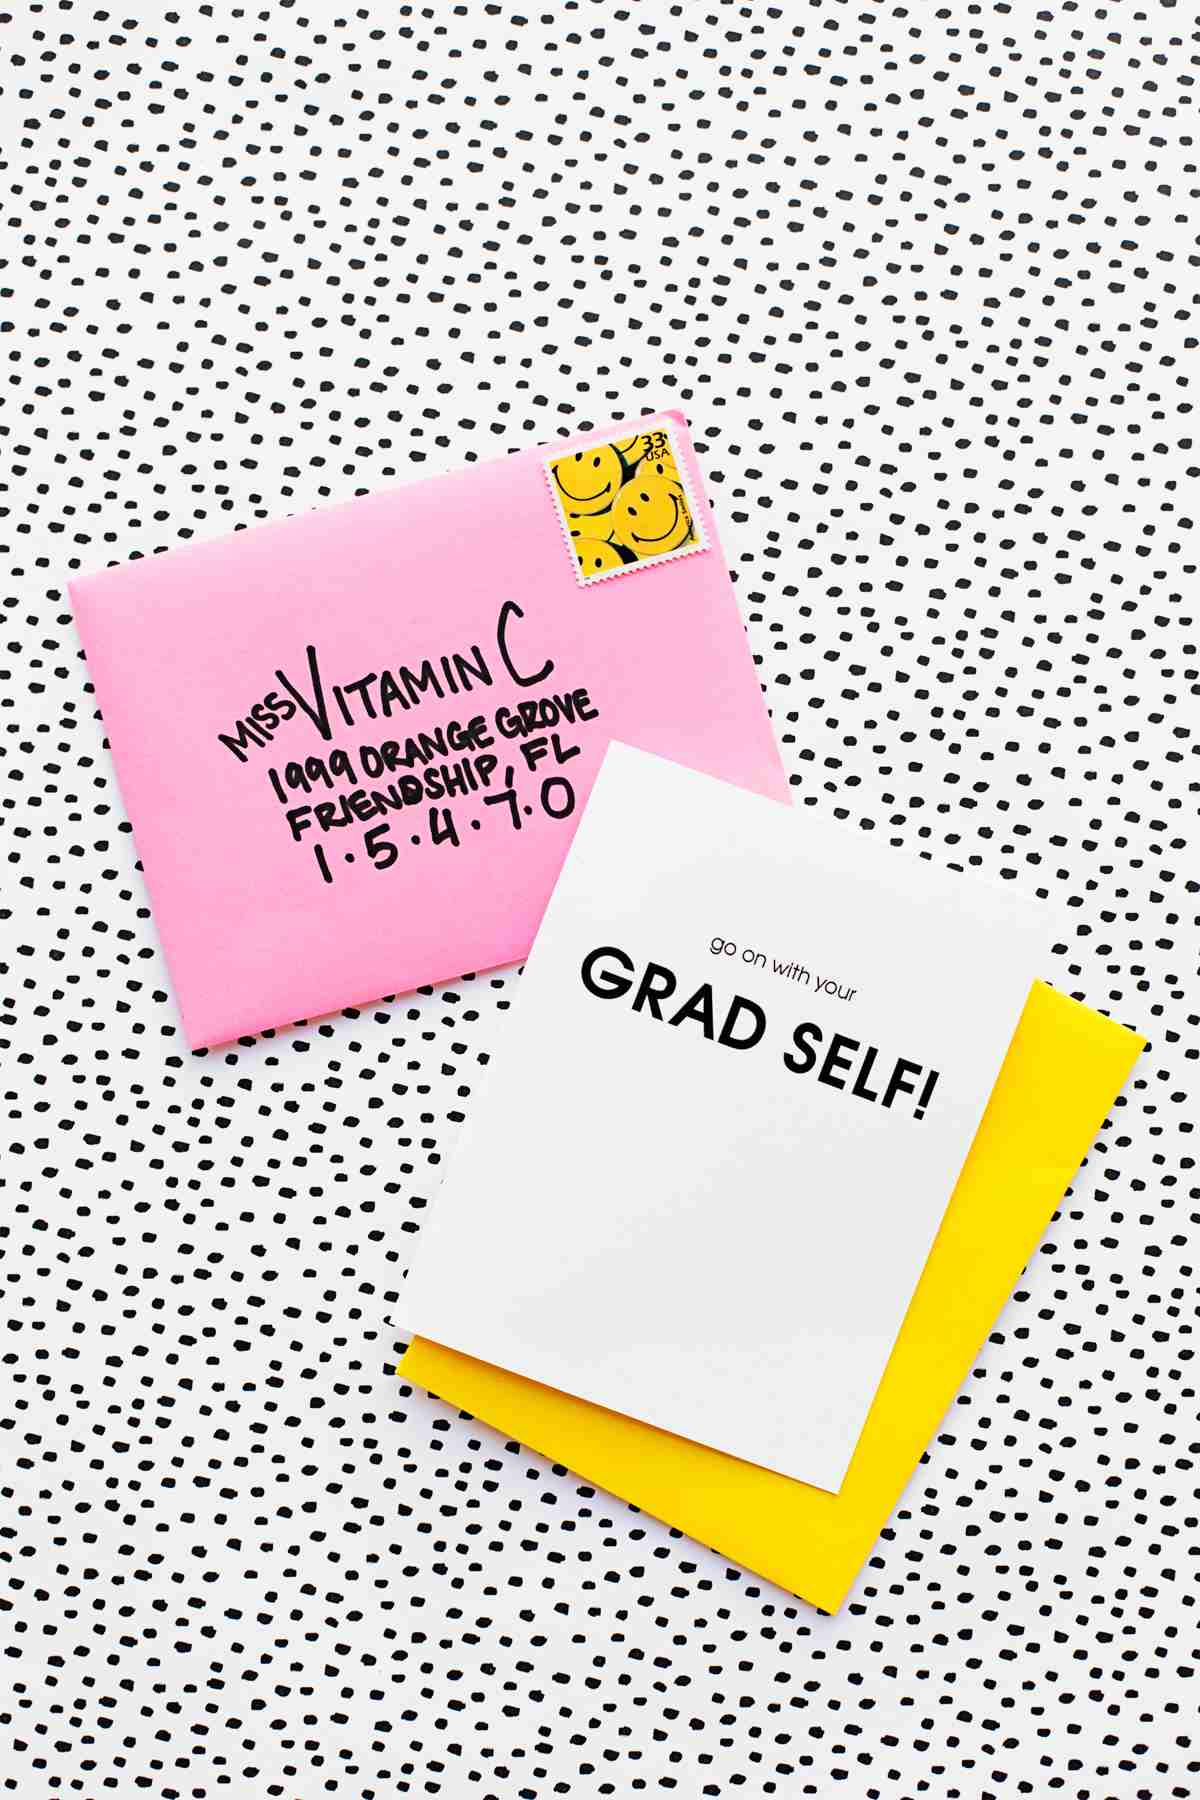 30 Amazing Graduation Gifts That You Can Make